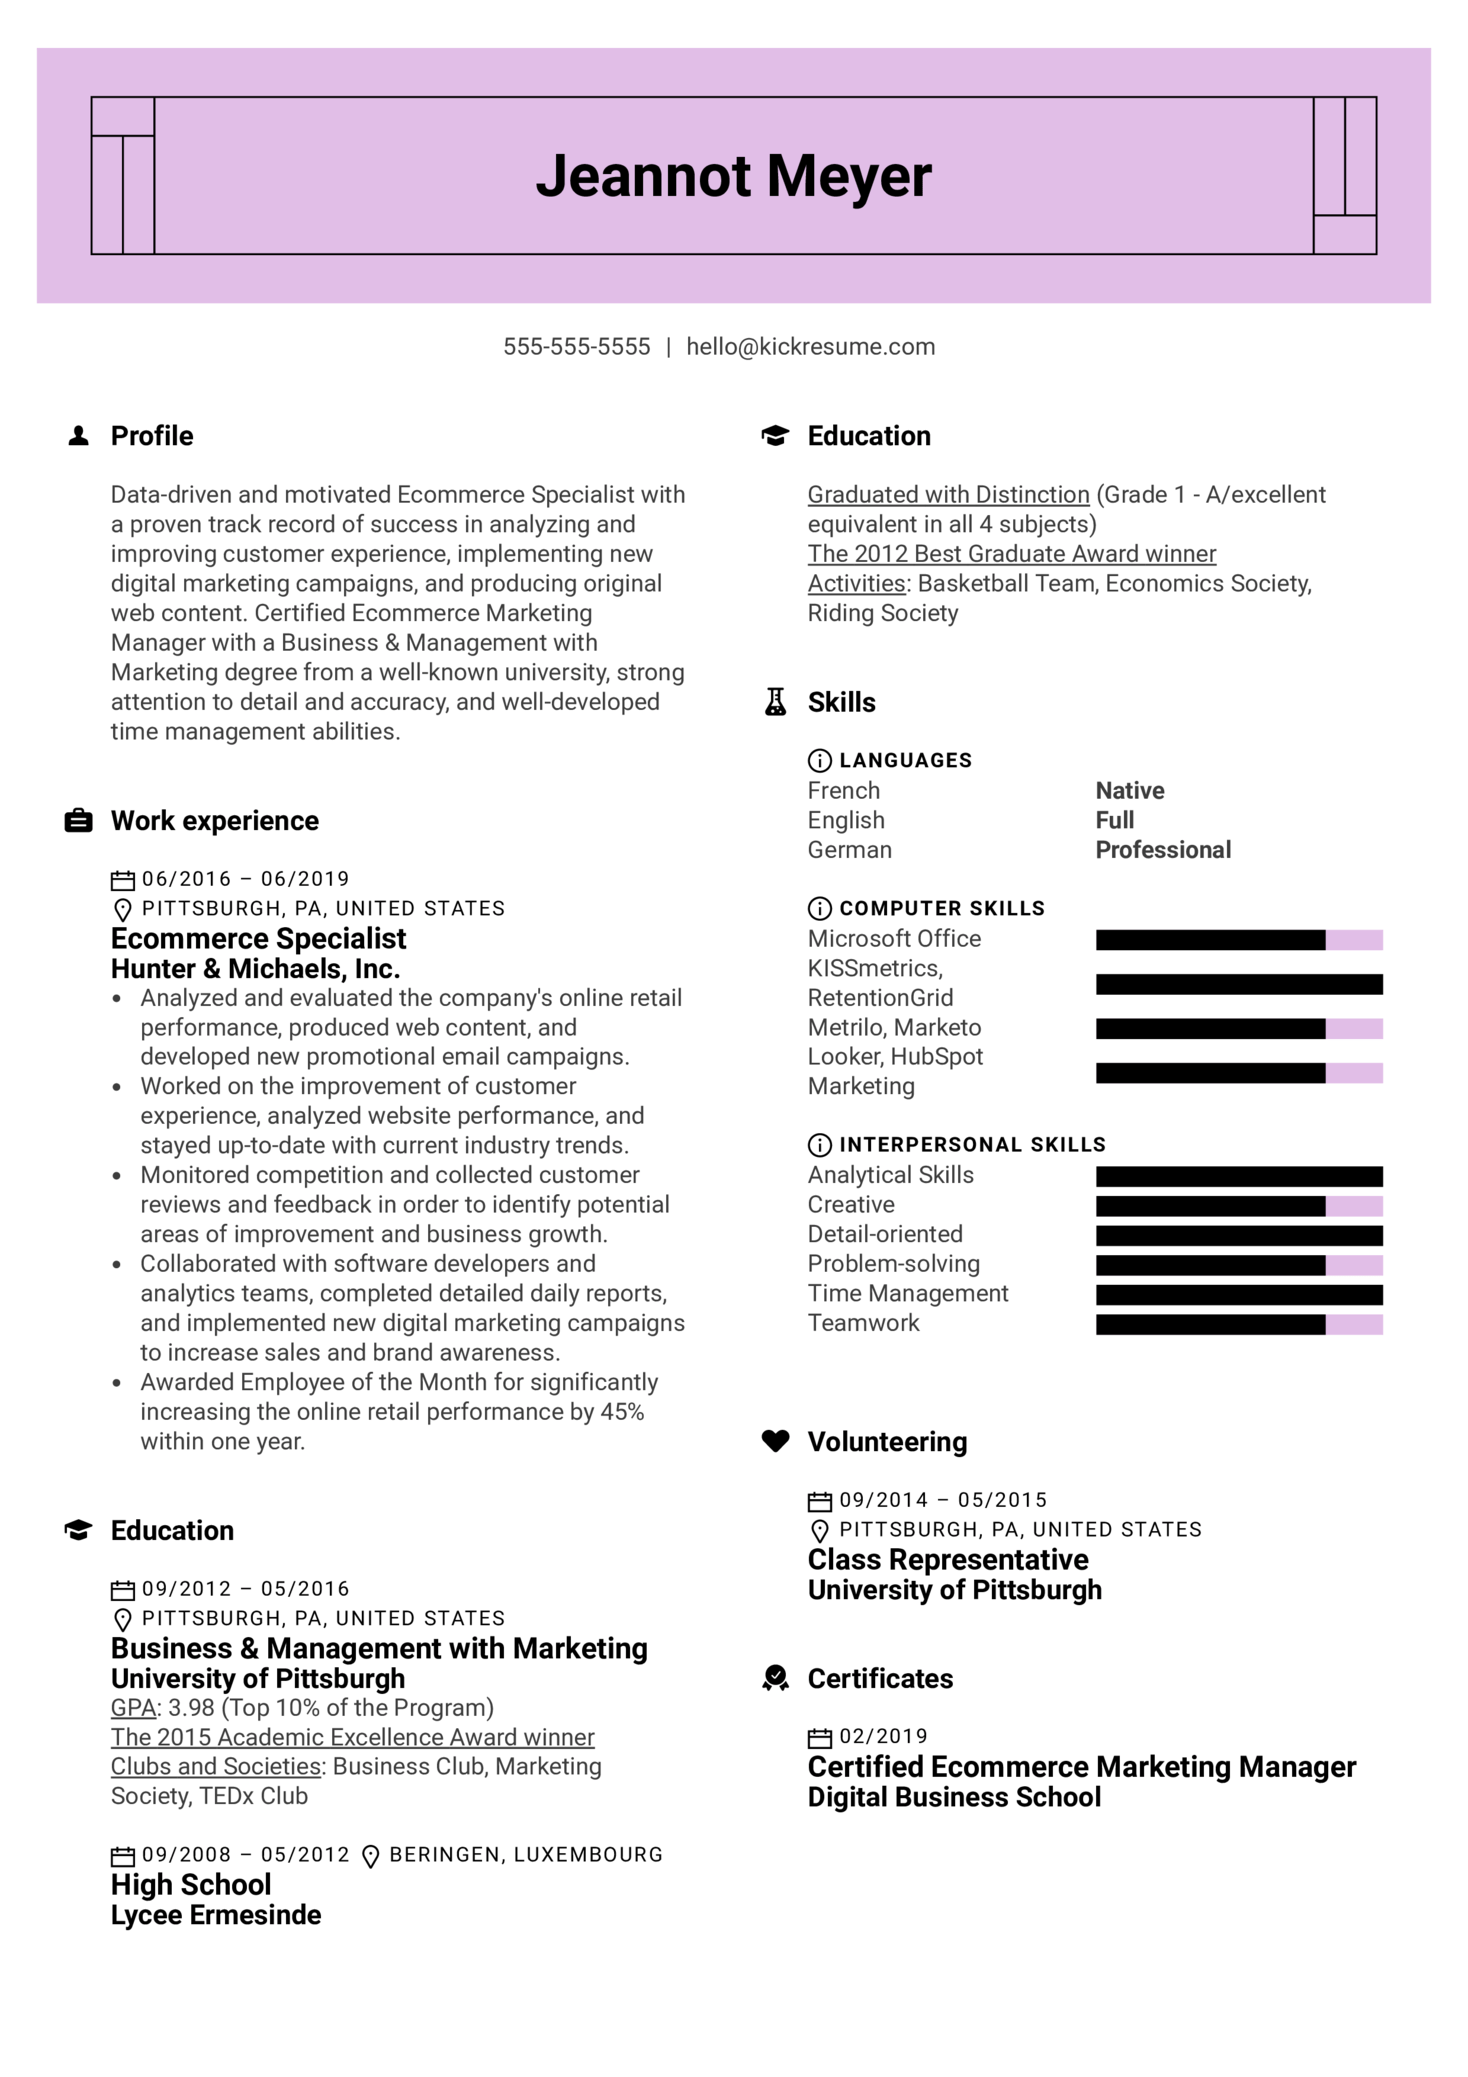 Ecommerce Specialist Resume Sample